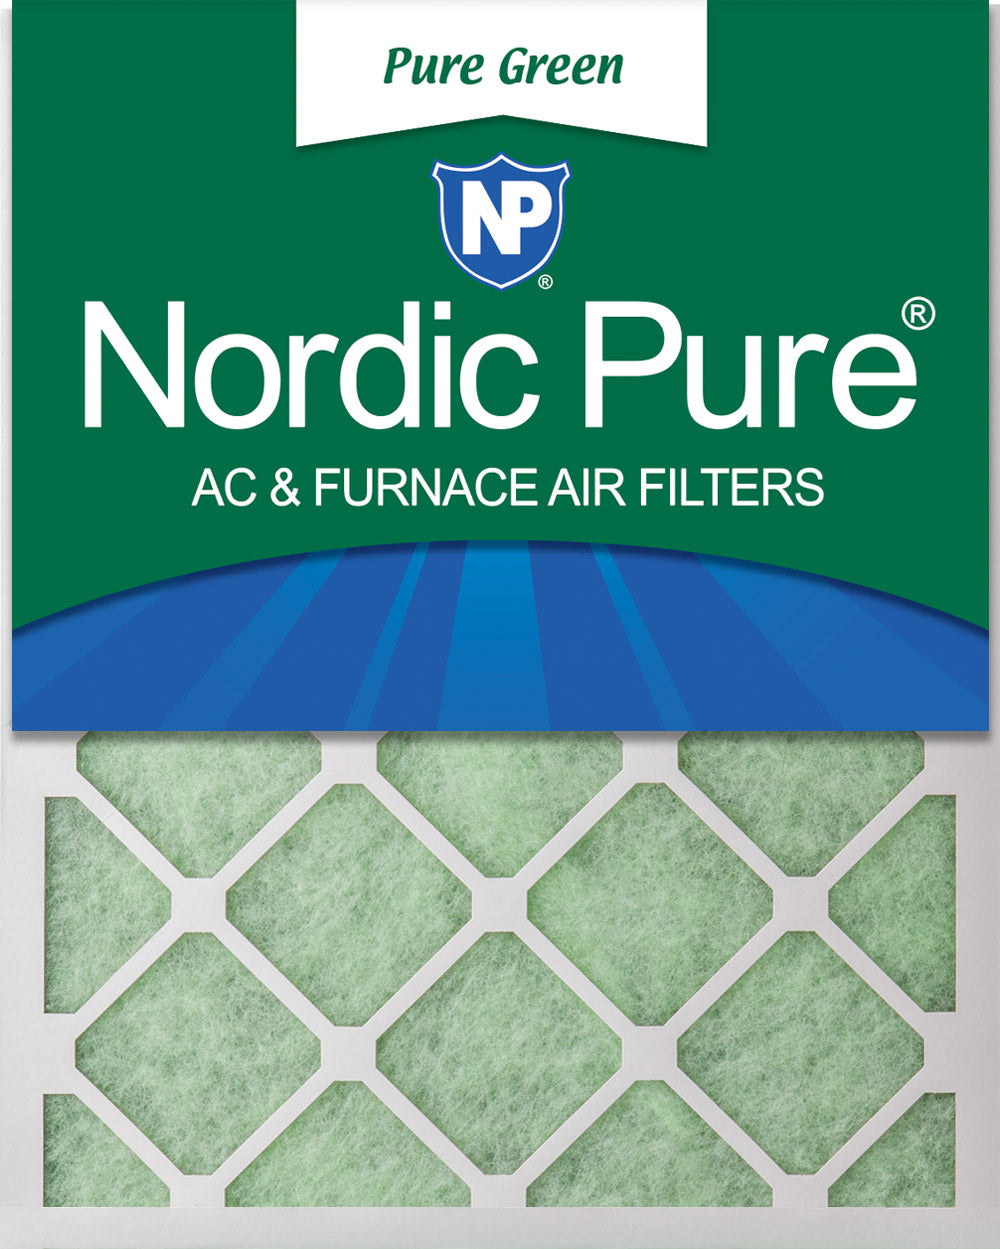 20x25x1 Pure Green Eco-Friendly AC Furnace Air Filters 3 Pack